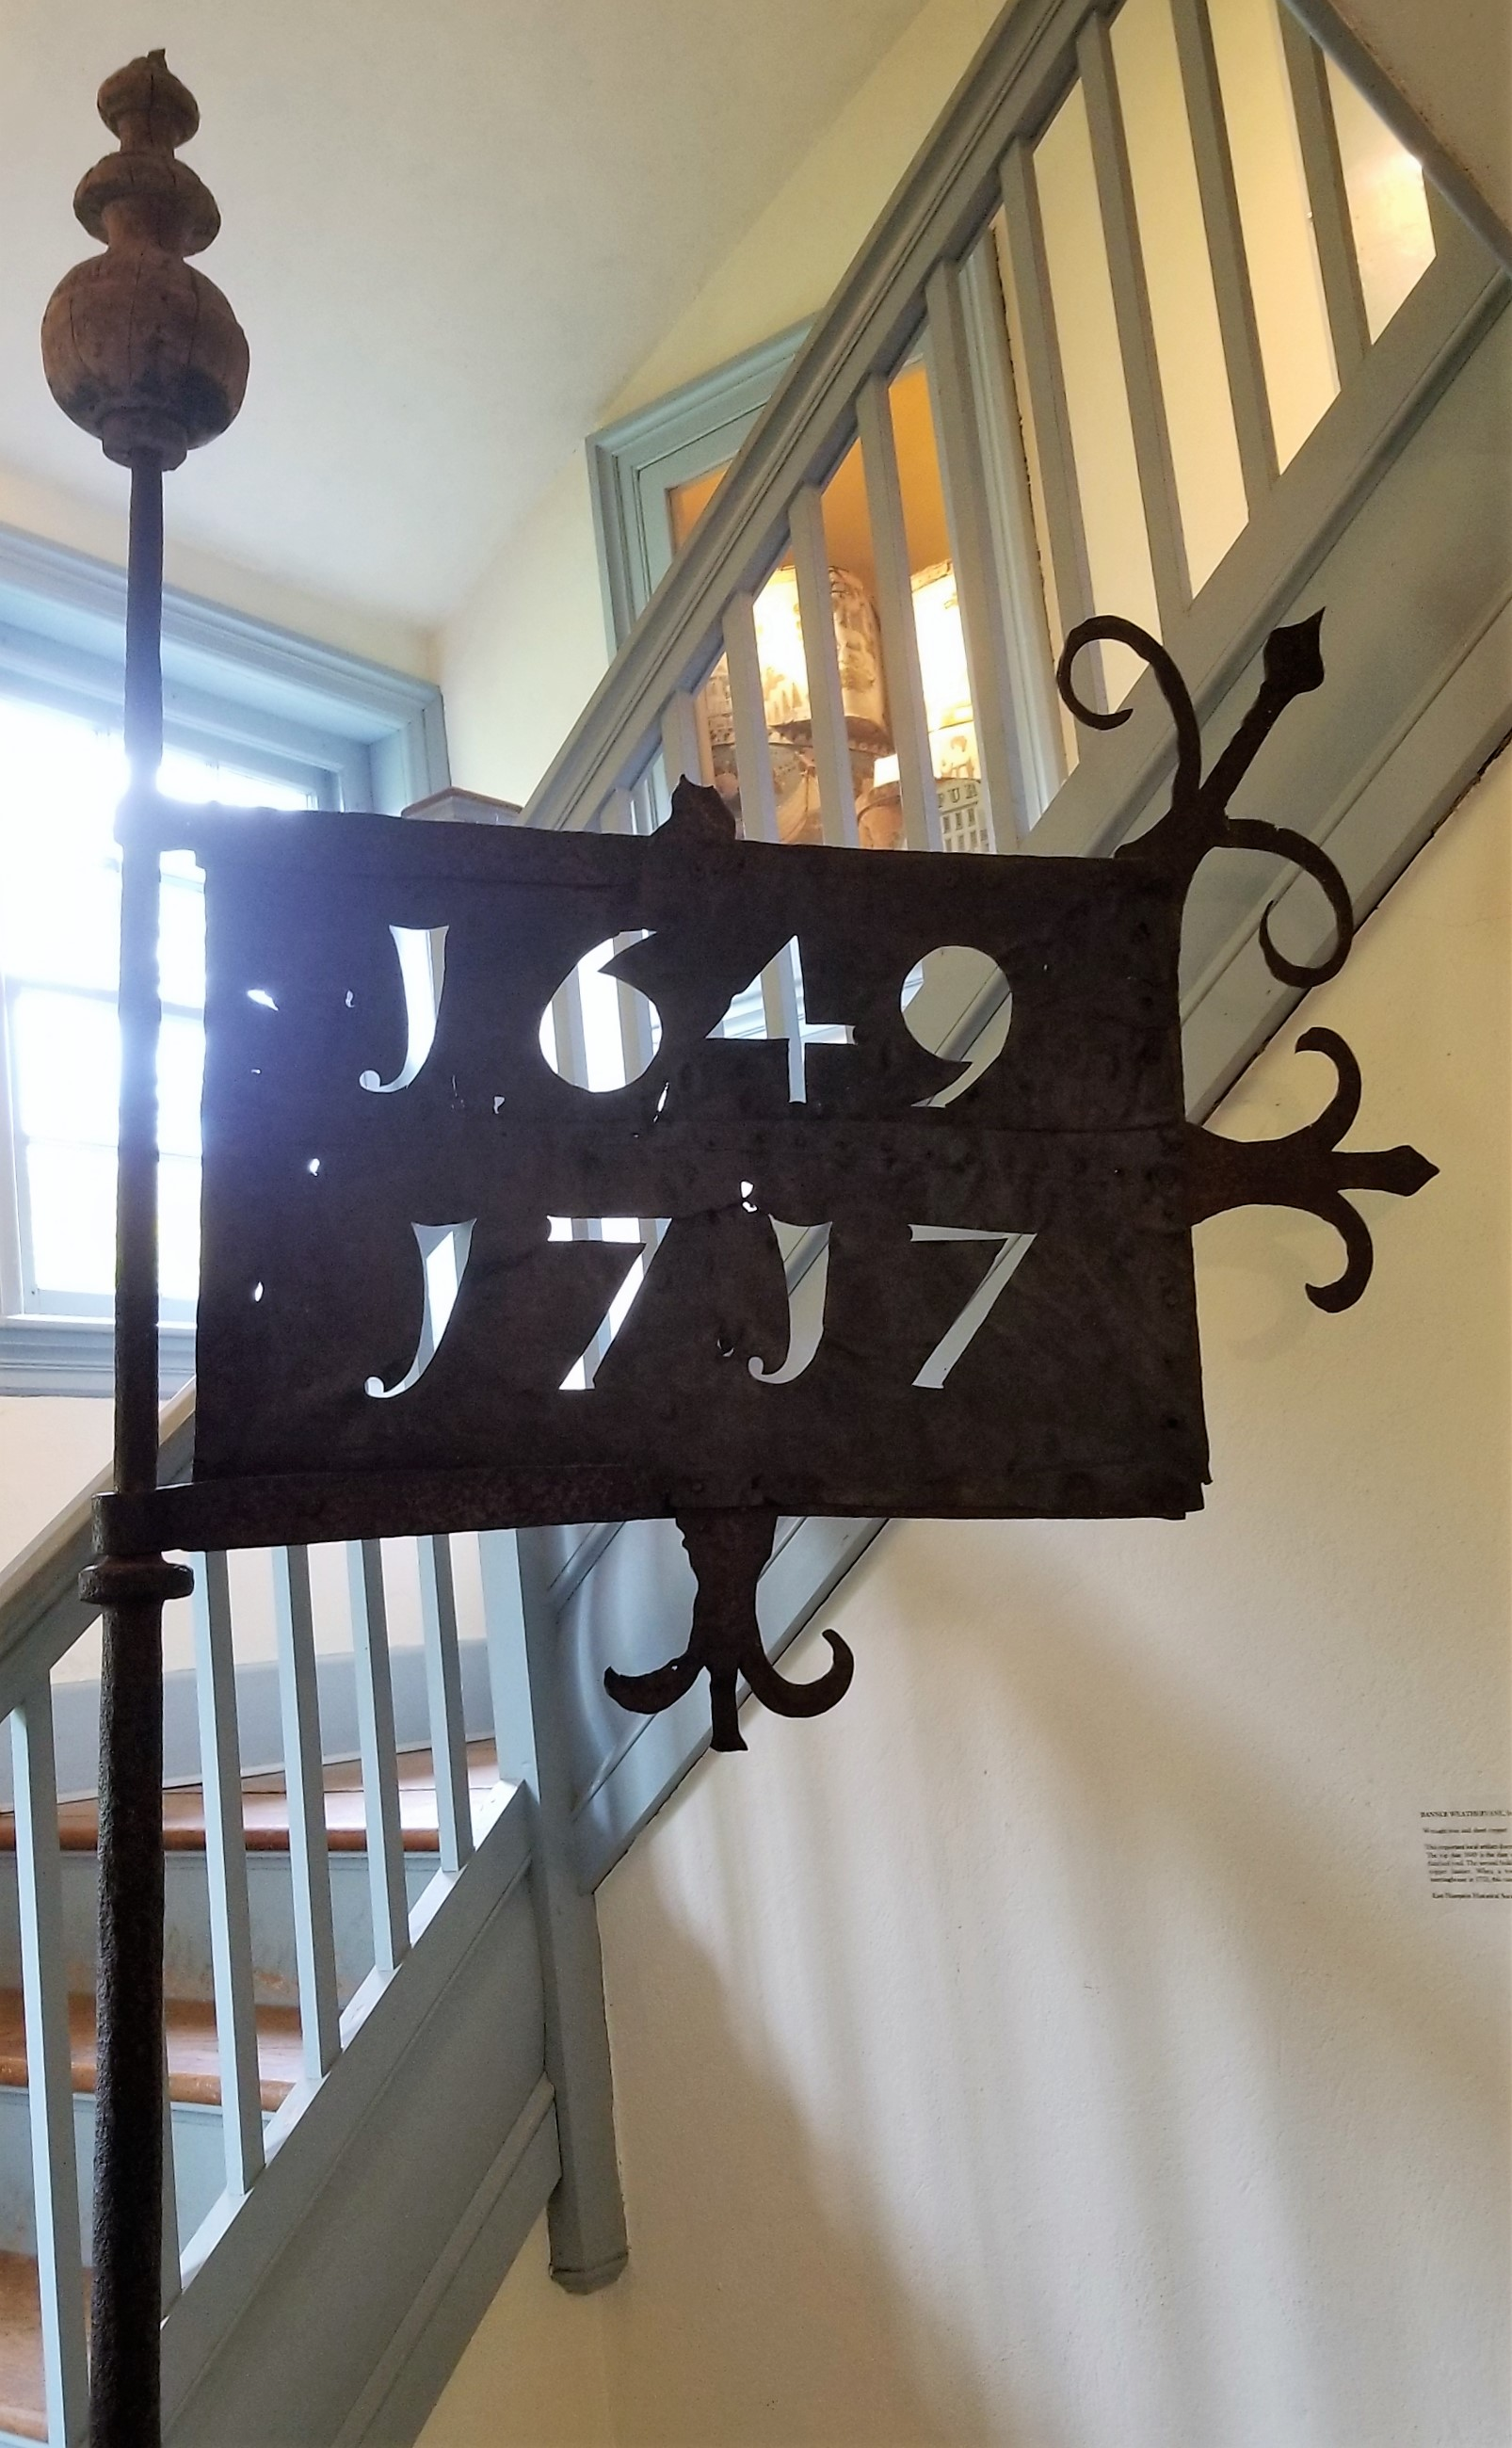 Banner Weather Vane, from the 1717 church, c. 1753  wrought iron and sheet cooper  This important local artifact documents the history of East Hampton's Meeting Houses. The top date 1649 is the date of construction of our first meeting house that had a thatched roof. The second building was built in 1717 memorialized by its date on this cooper banner. When a tower, clock, and steeple were added to the 1717 meetinghouse in 1753, this vane was constructed to honor the churches' lineage.  East Hampton Historical Society